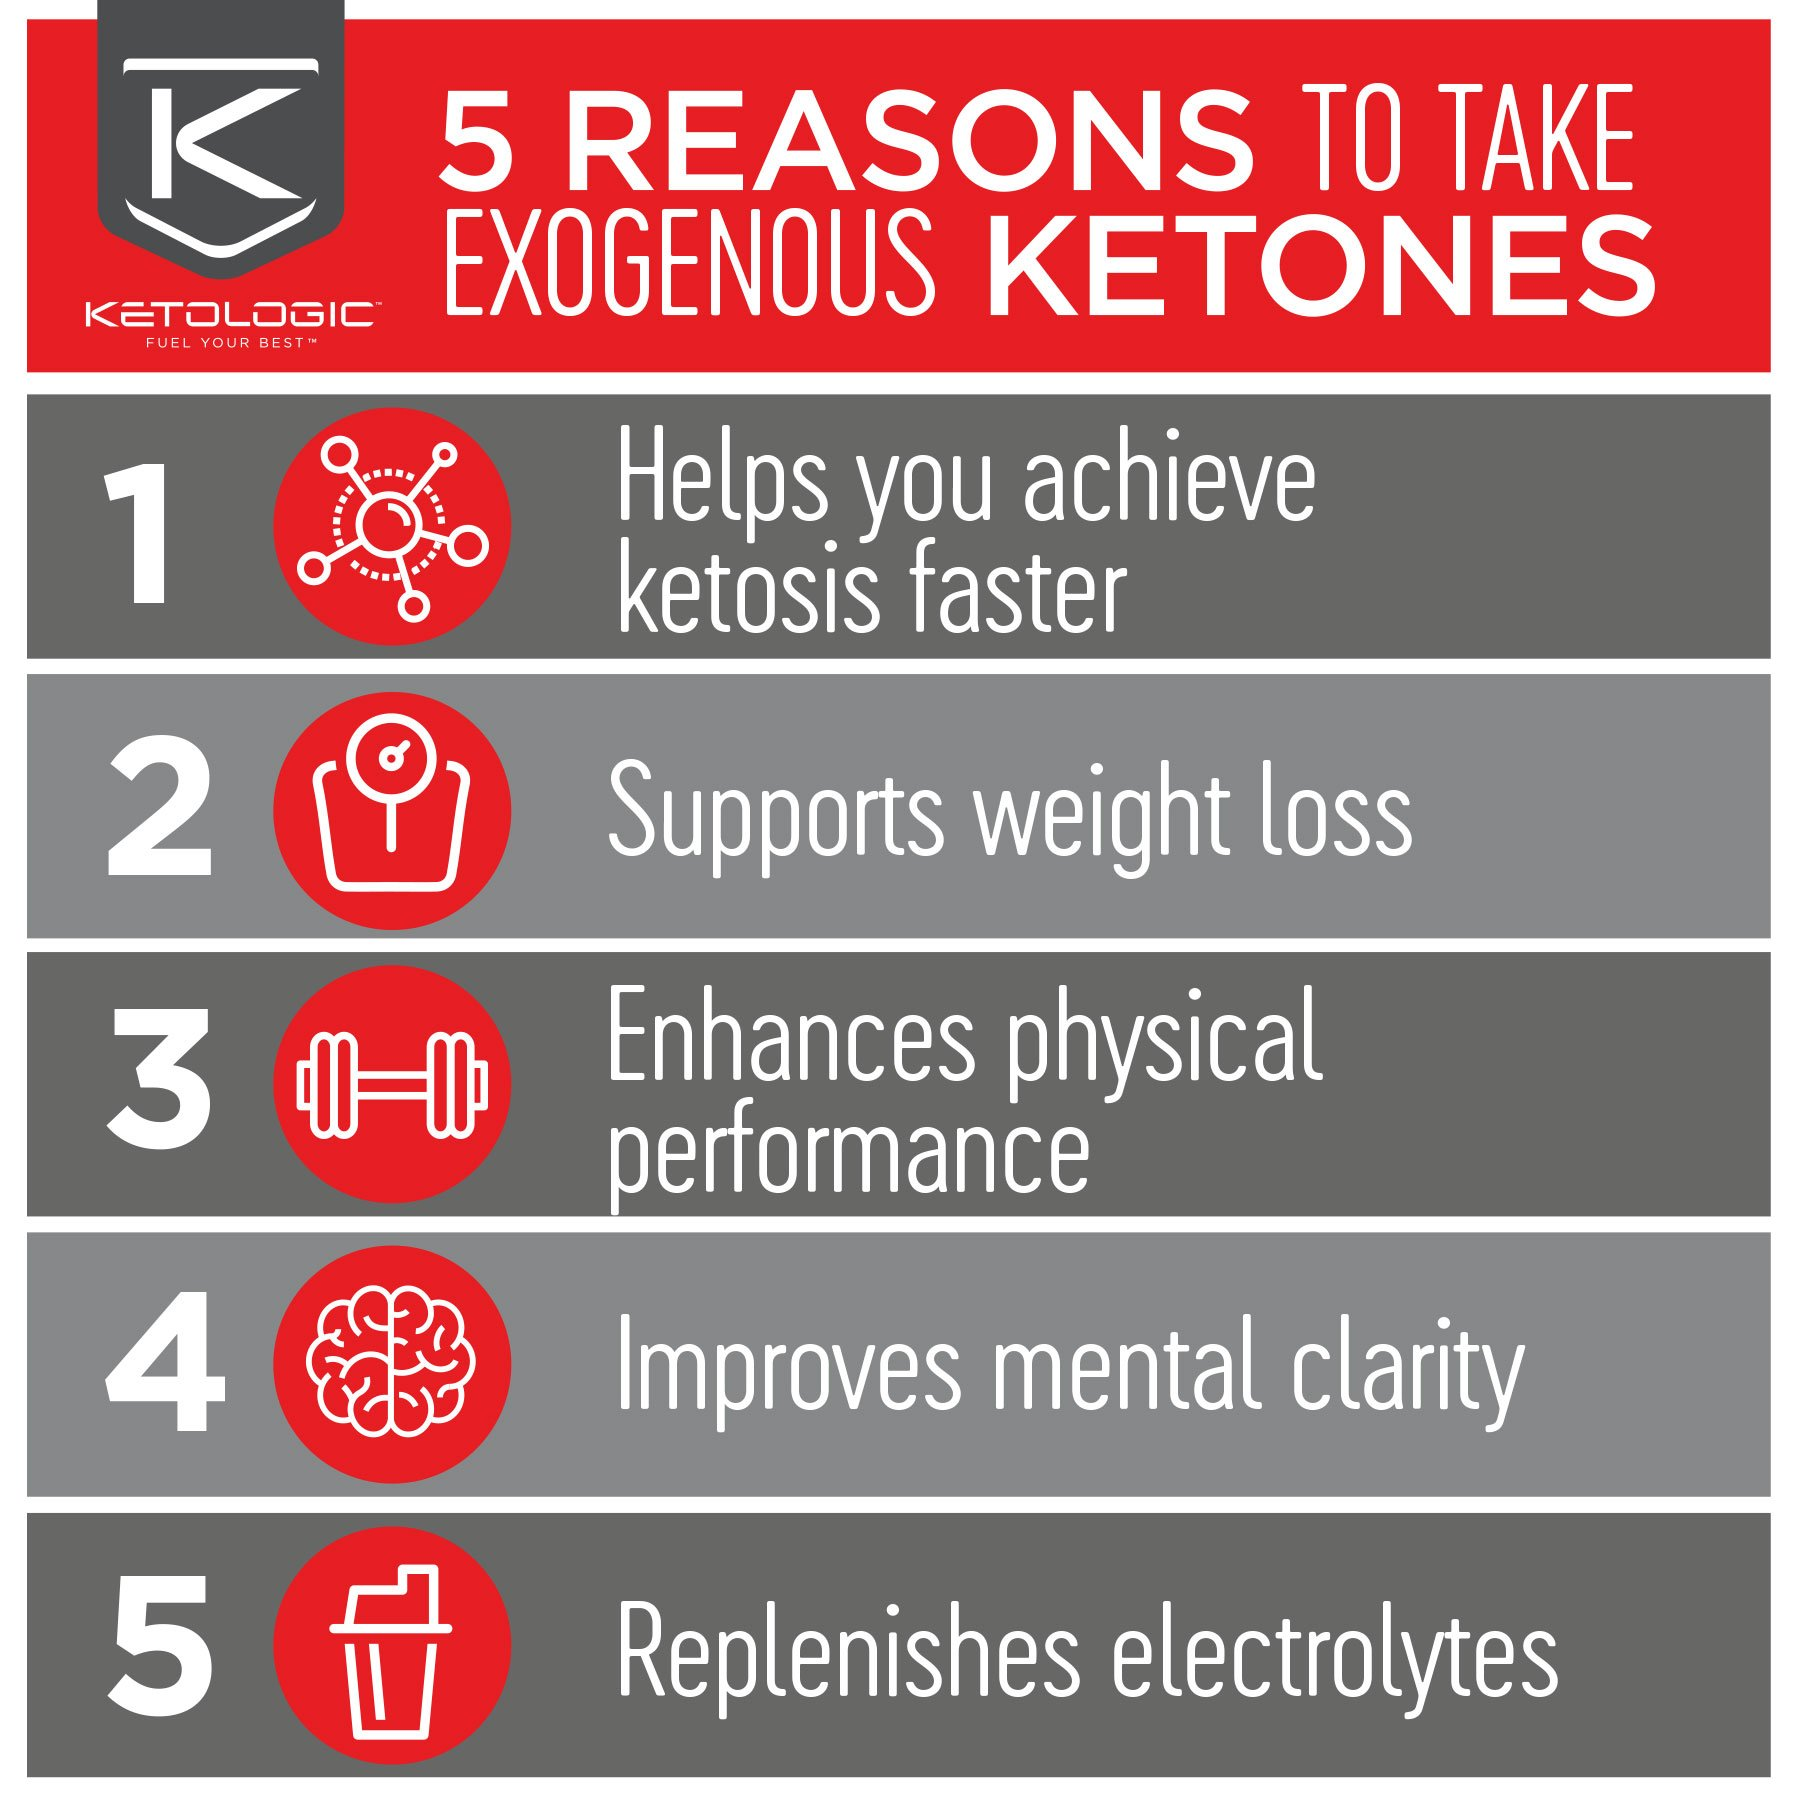 KetoLogic BHB,  Patriot Pop | Ketone Supplement, Suppresses Appetite, Increases Energy, Low Carb, Electrolytes, Beta-Hydroxybutyrate Salts | 60 Servings by Ketologic (Image #4)